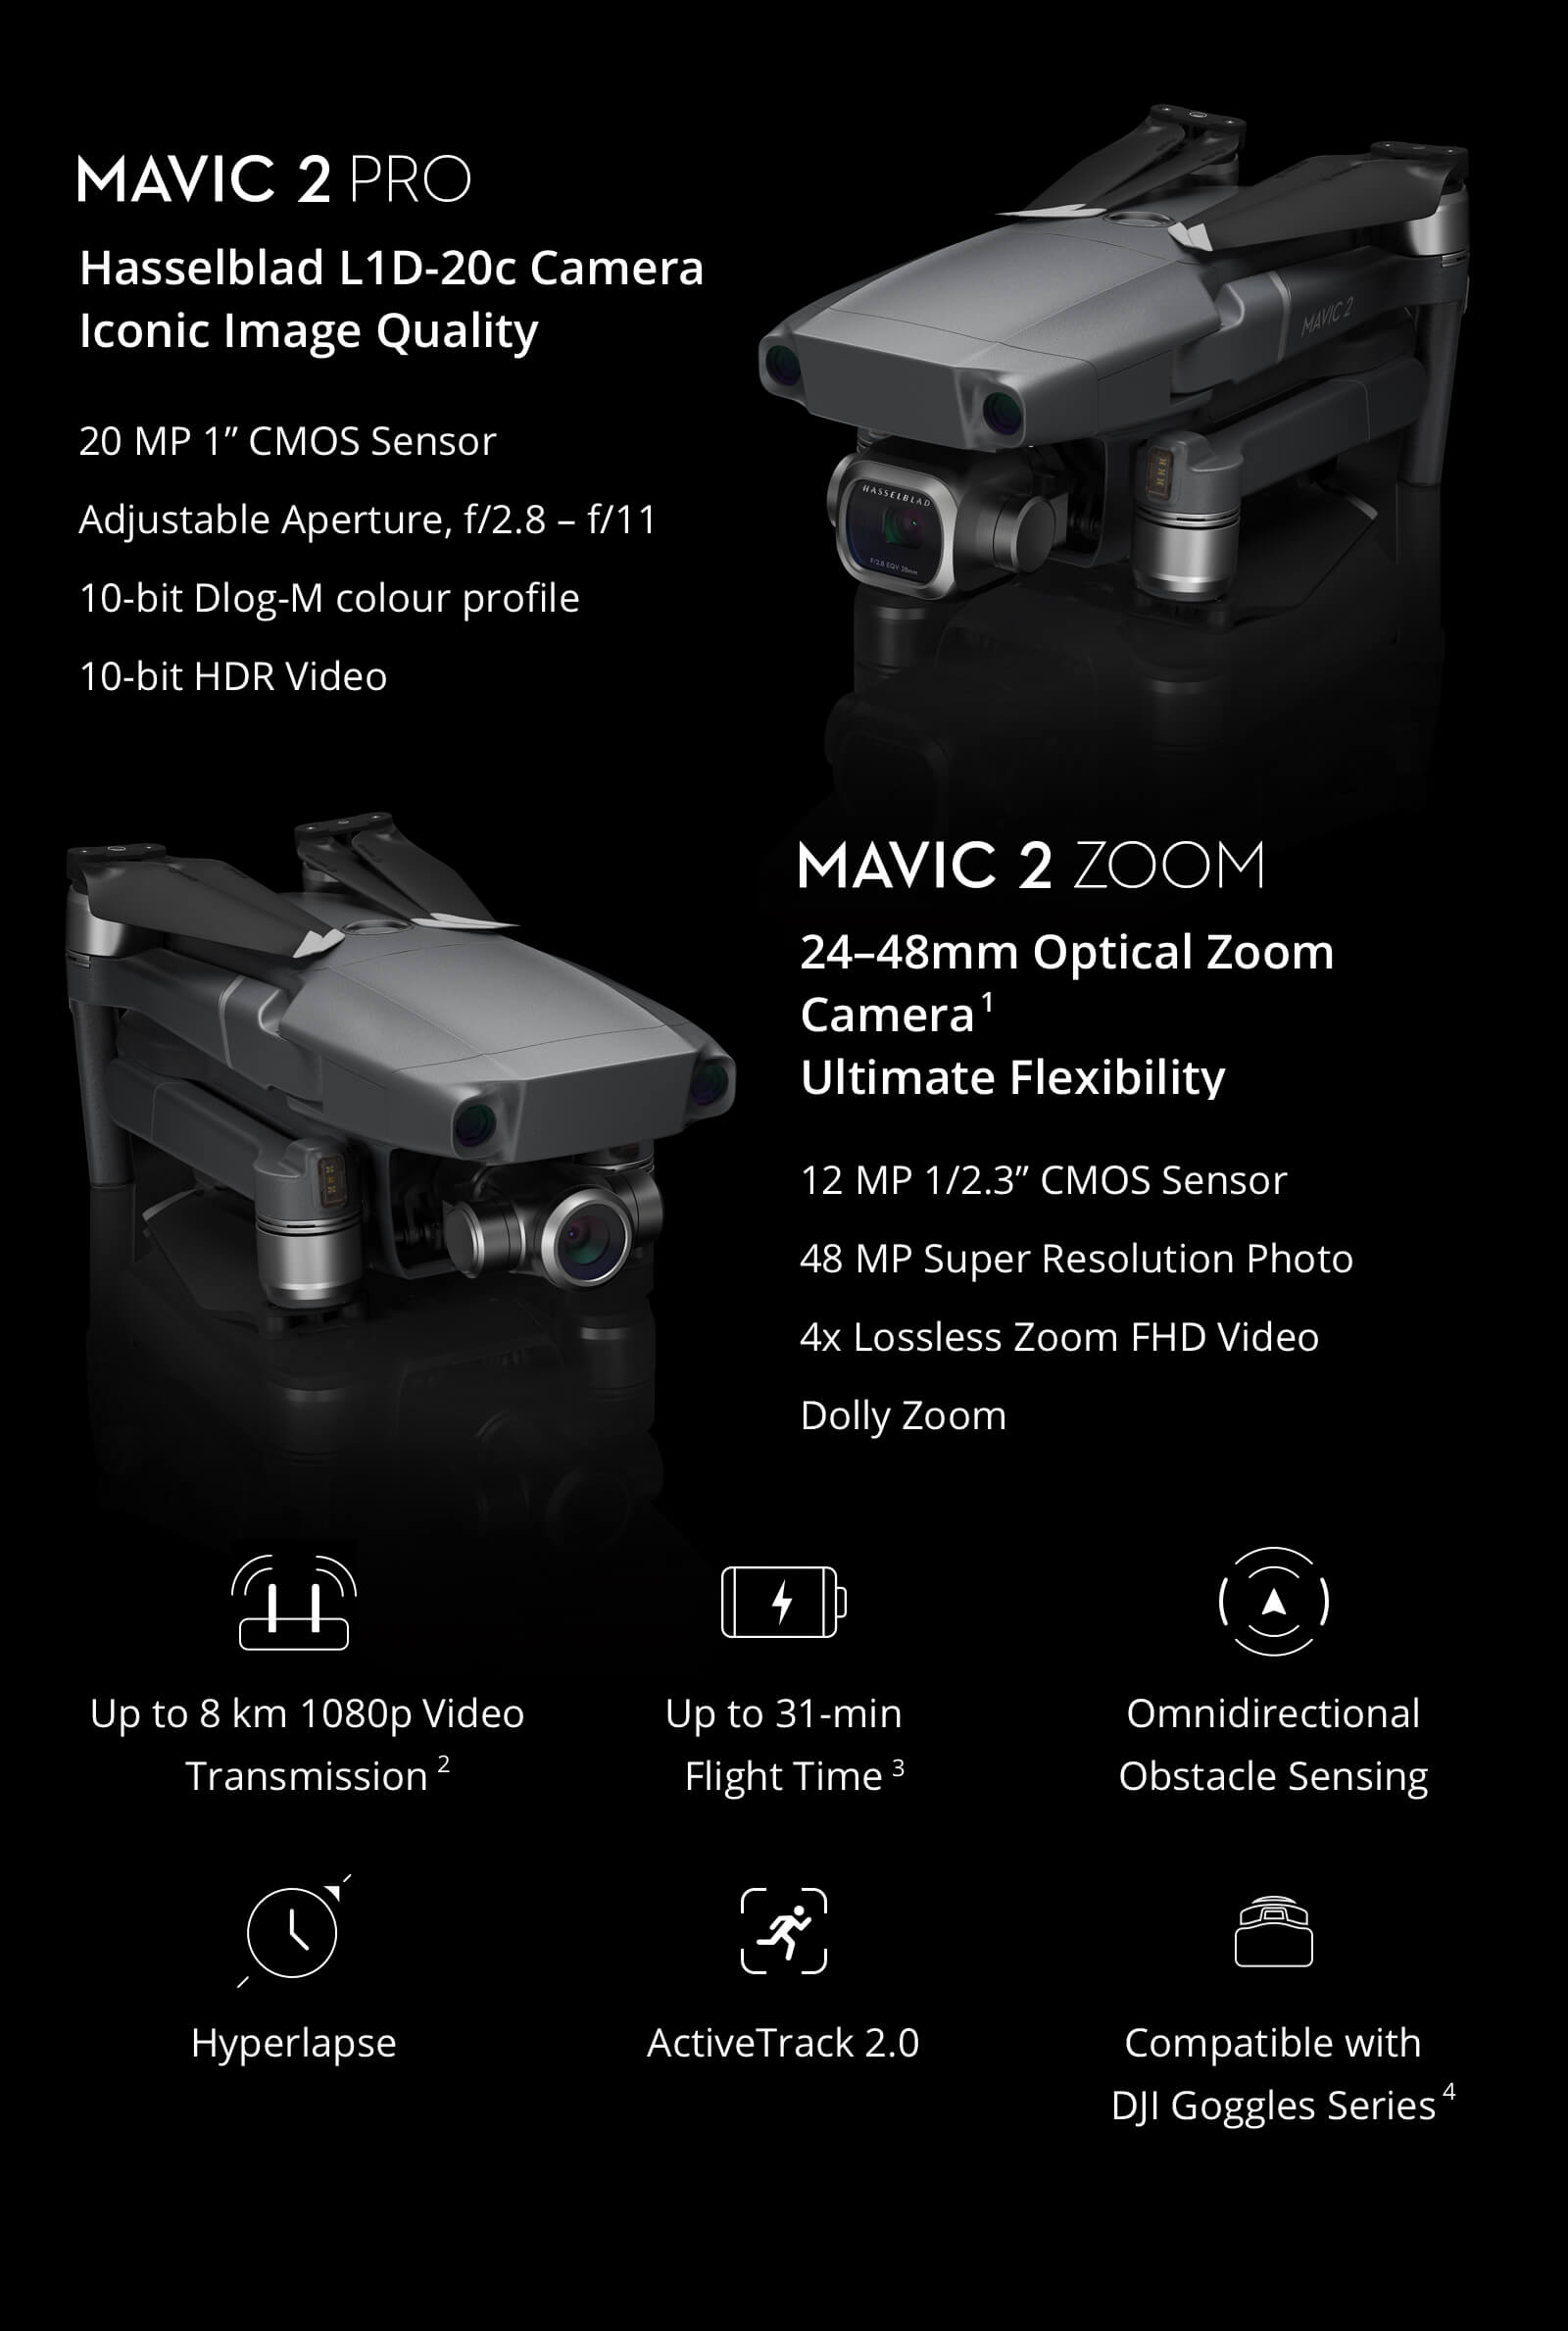 fpvcrazy 28c6ed5d-9a66-4b21-8aac-61ac7c8481b3 DJI MAVIC PRO 2 GUIDE TO BUY DRONE